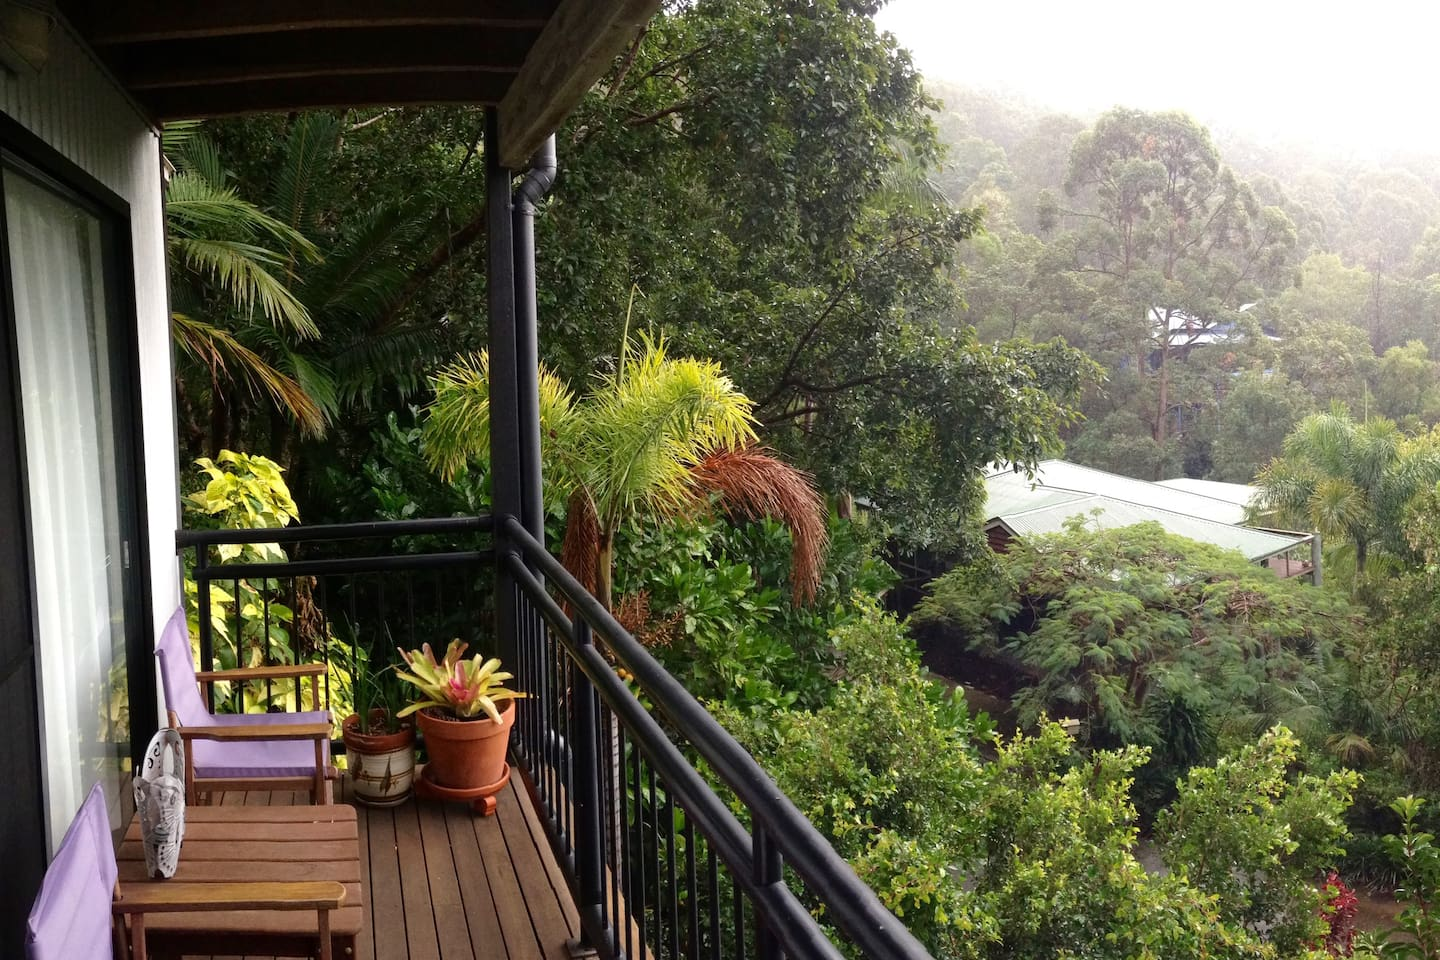 Savour a glass of wine or a cuppa overlooking your rainforest views.